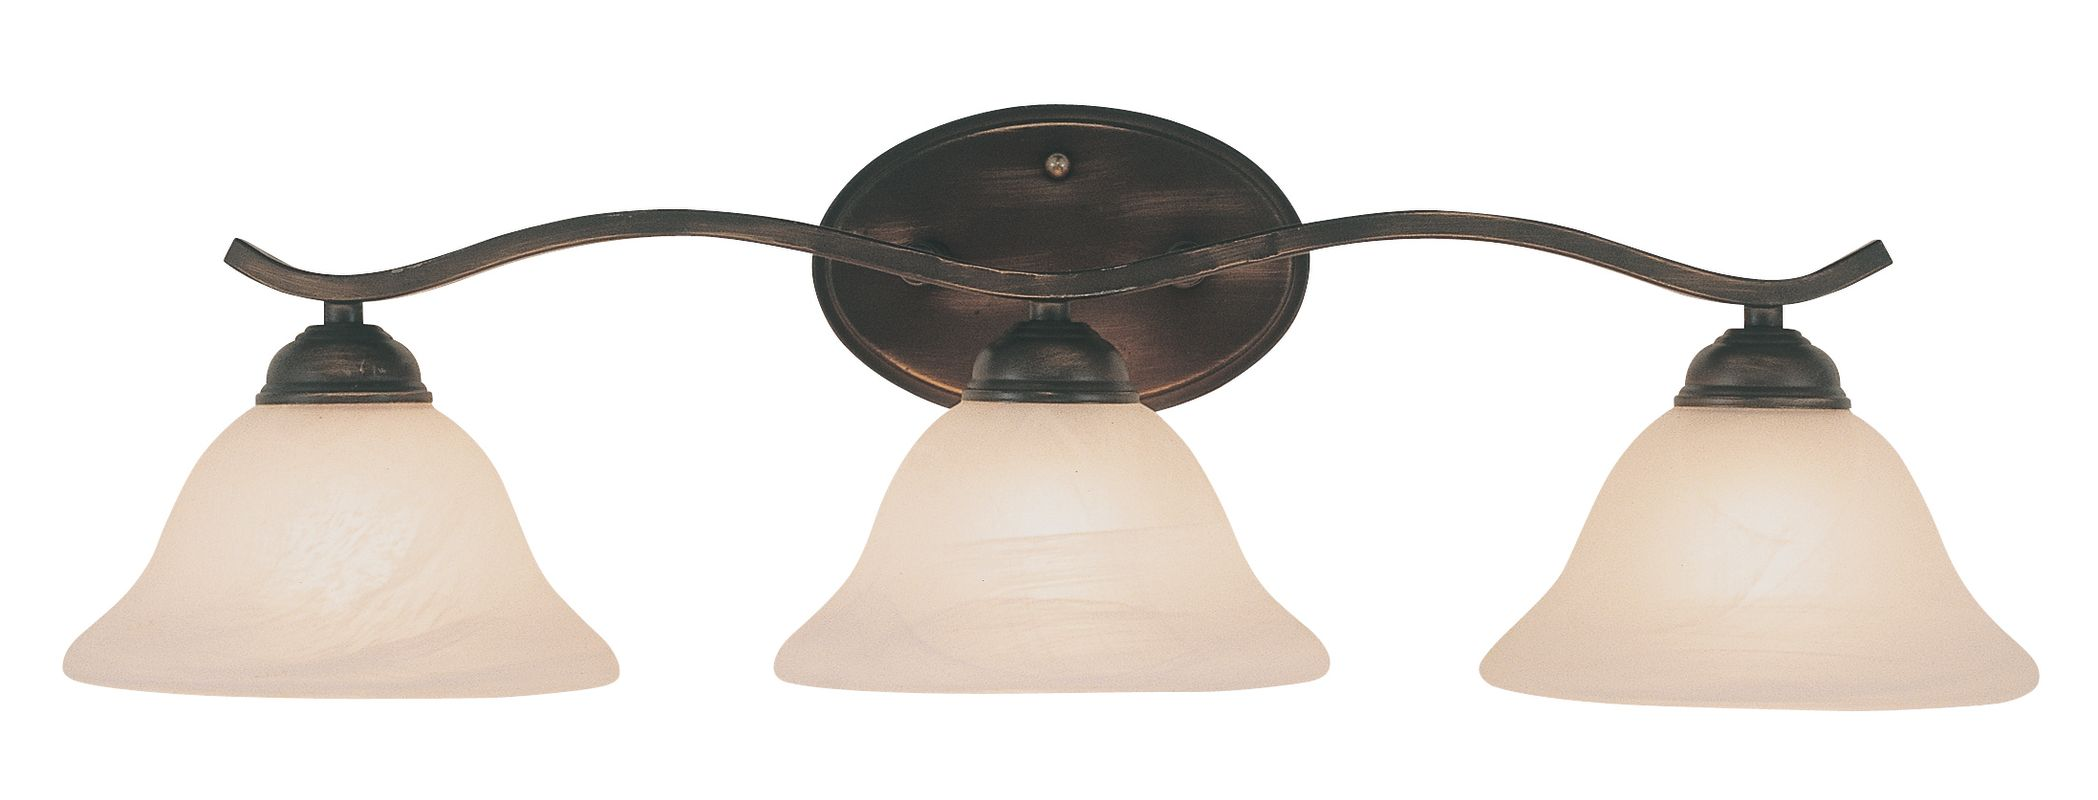 shop for replacement glass globe for light fixture